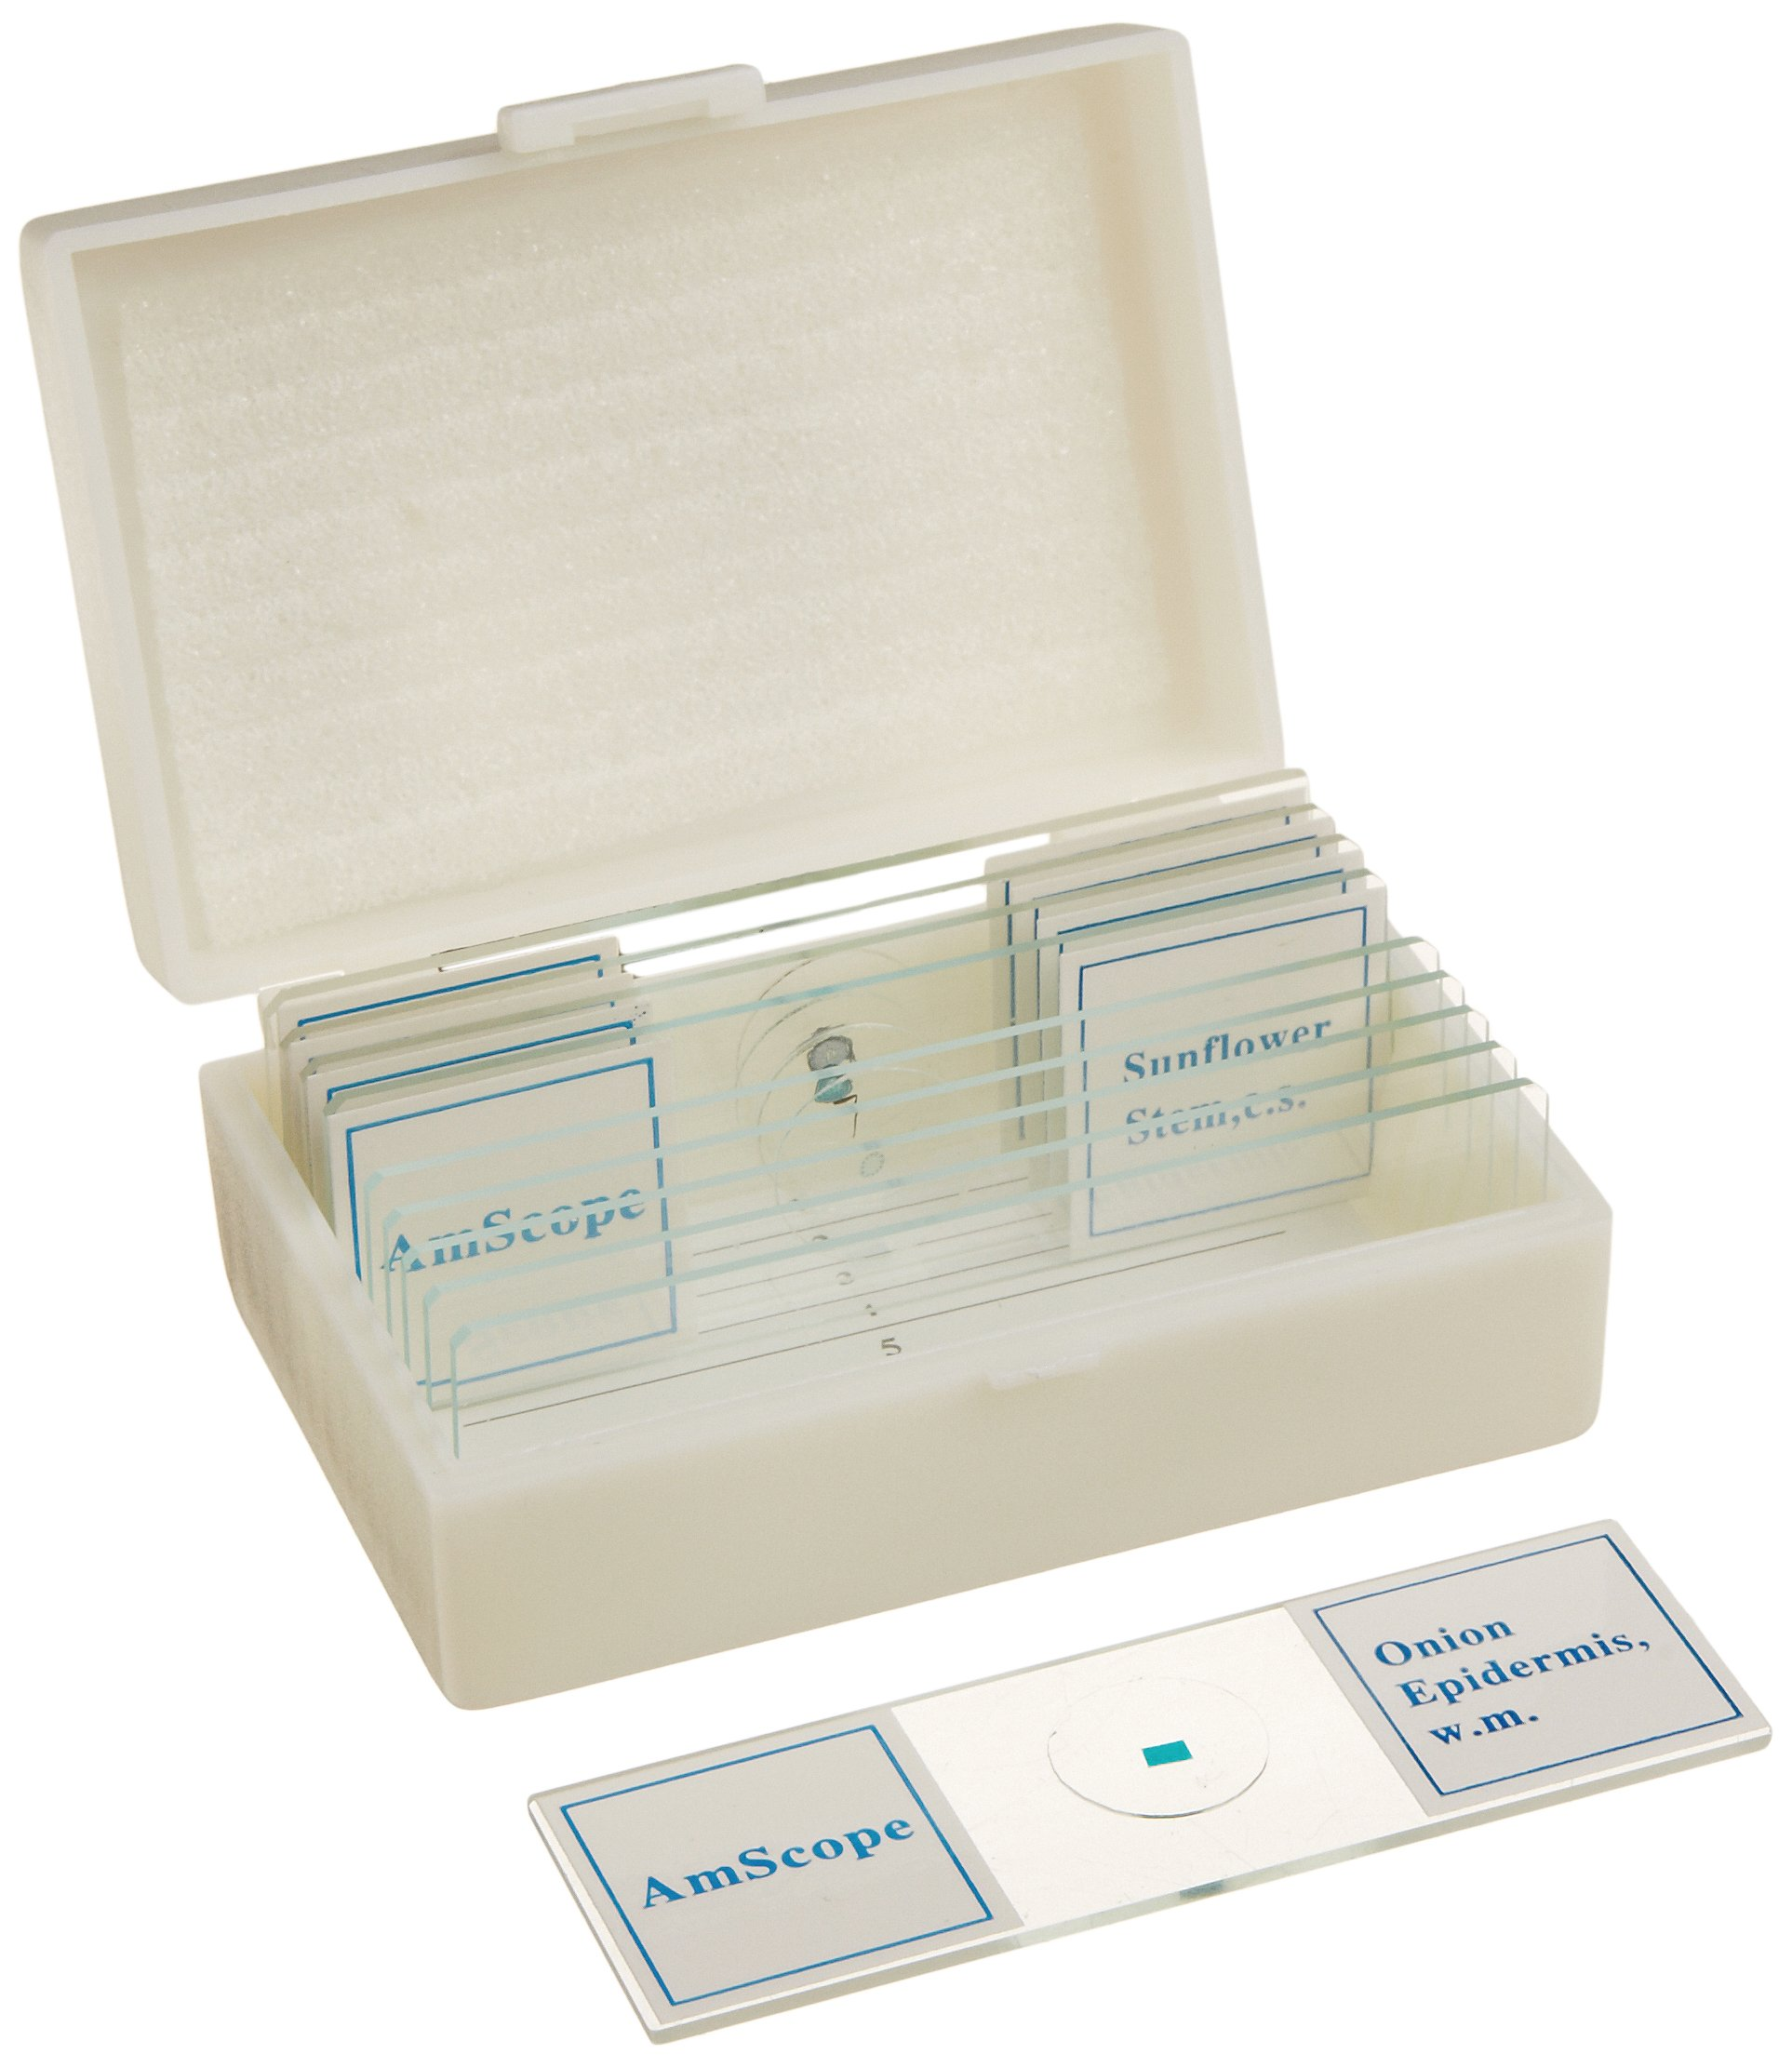 AmScope PS10 Blank and Prepared Microscope Slide Set for Basic Biological Science Education, Includes Five Blank and Five Prepared Slides in a Fitted Plastic Case